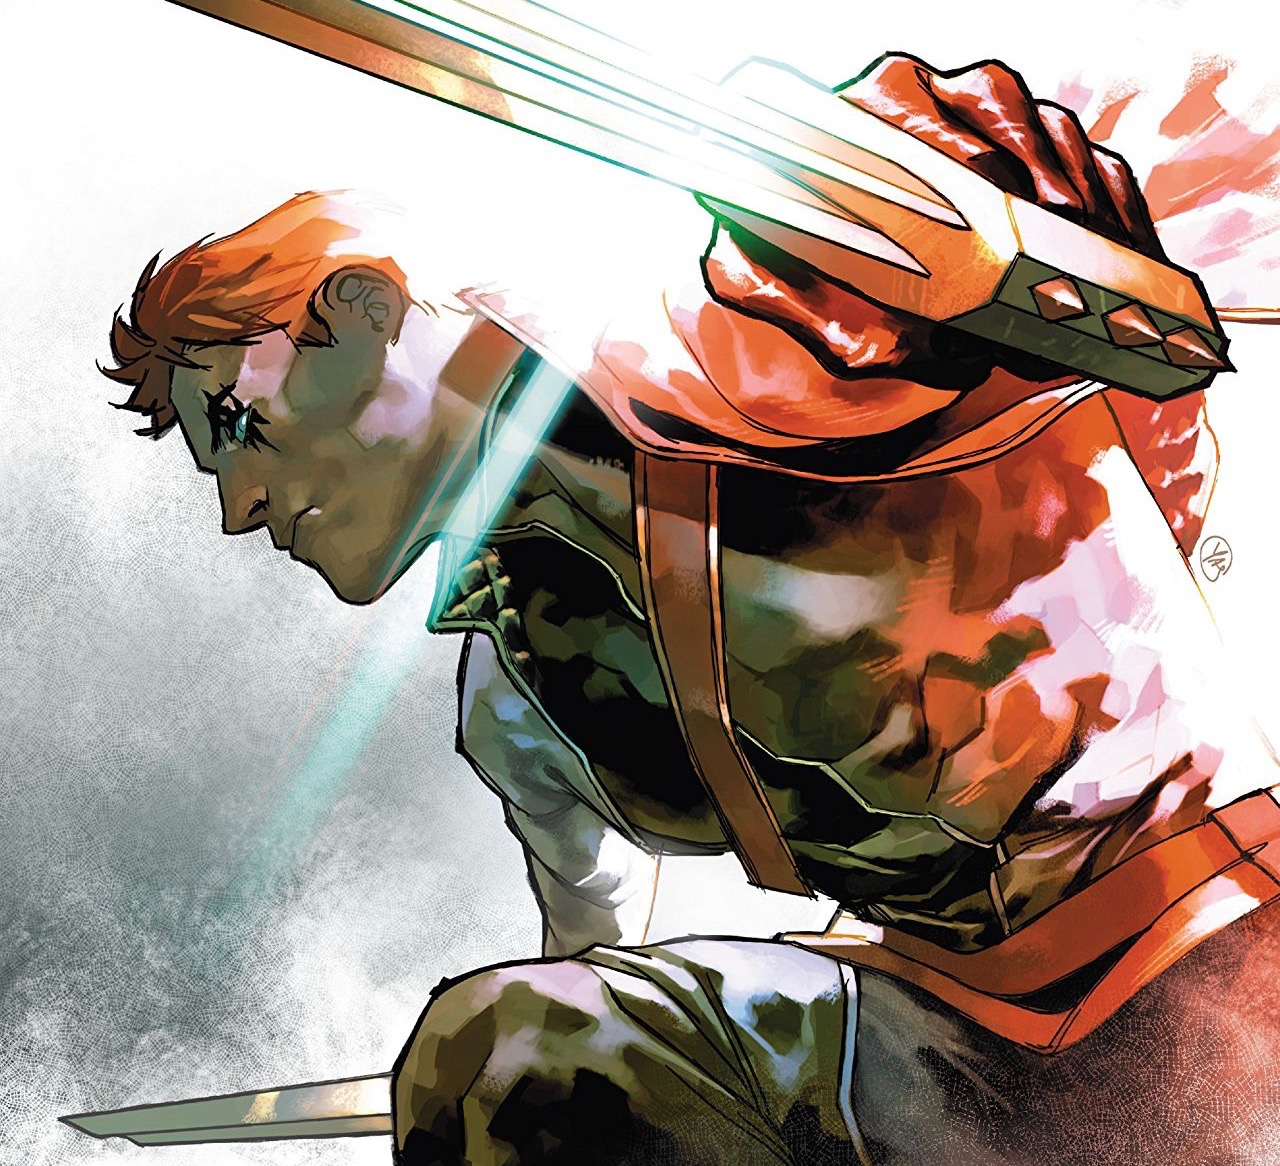 Shatterstar: Reality Star review - A story that shines in its quieter moments